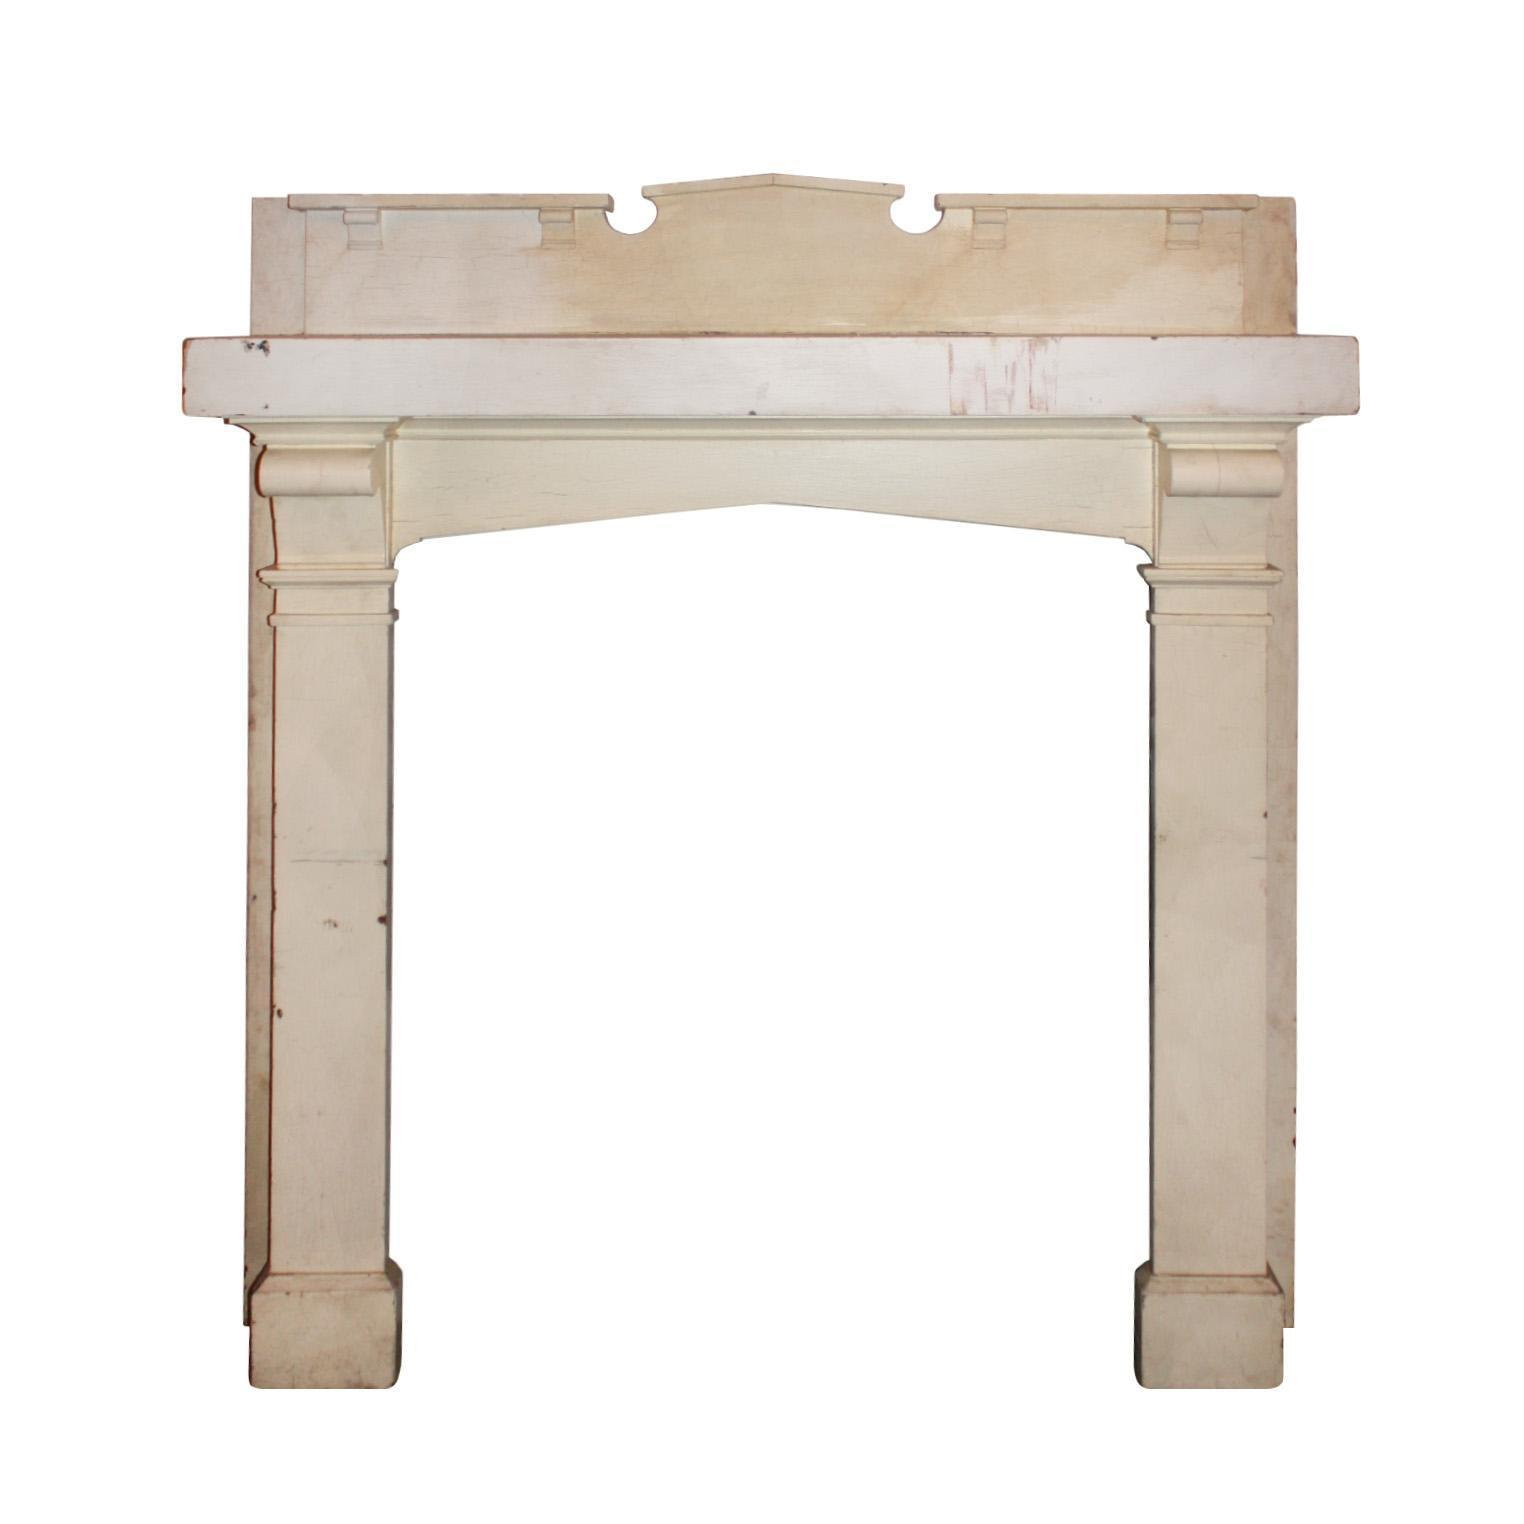 Antique Oak Fireplace Mantel with Triangular Arched Opening